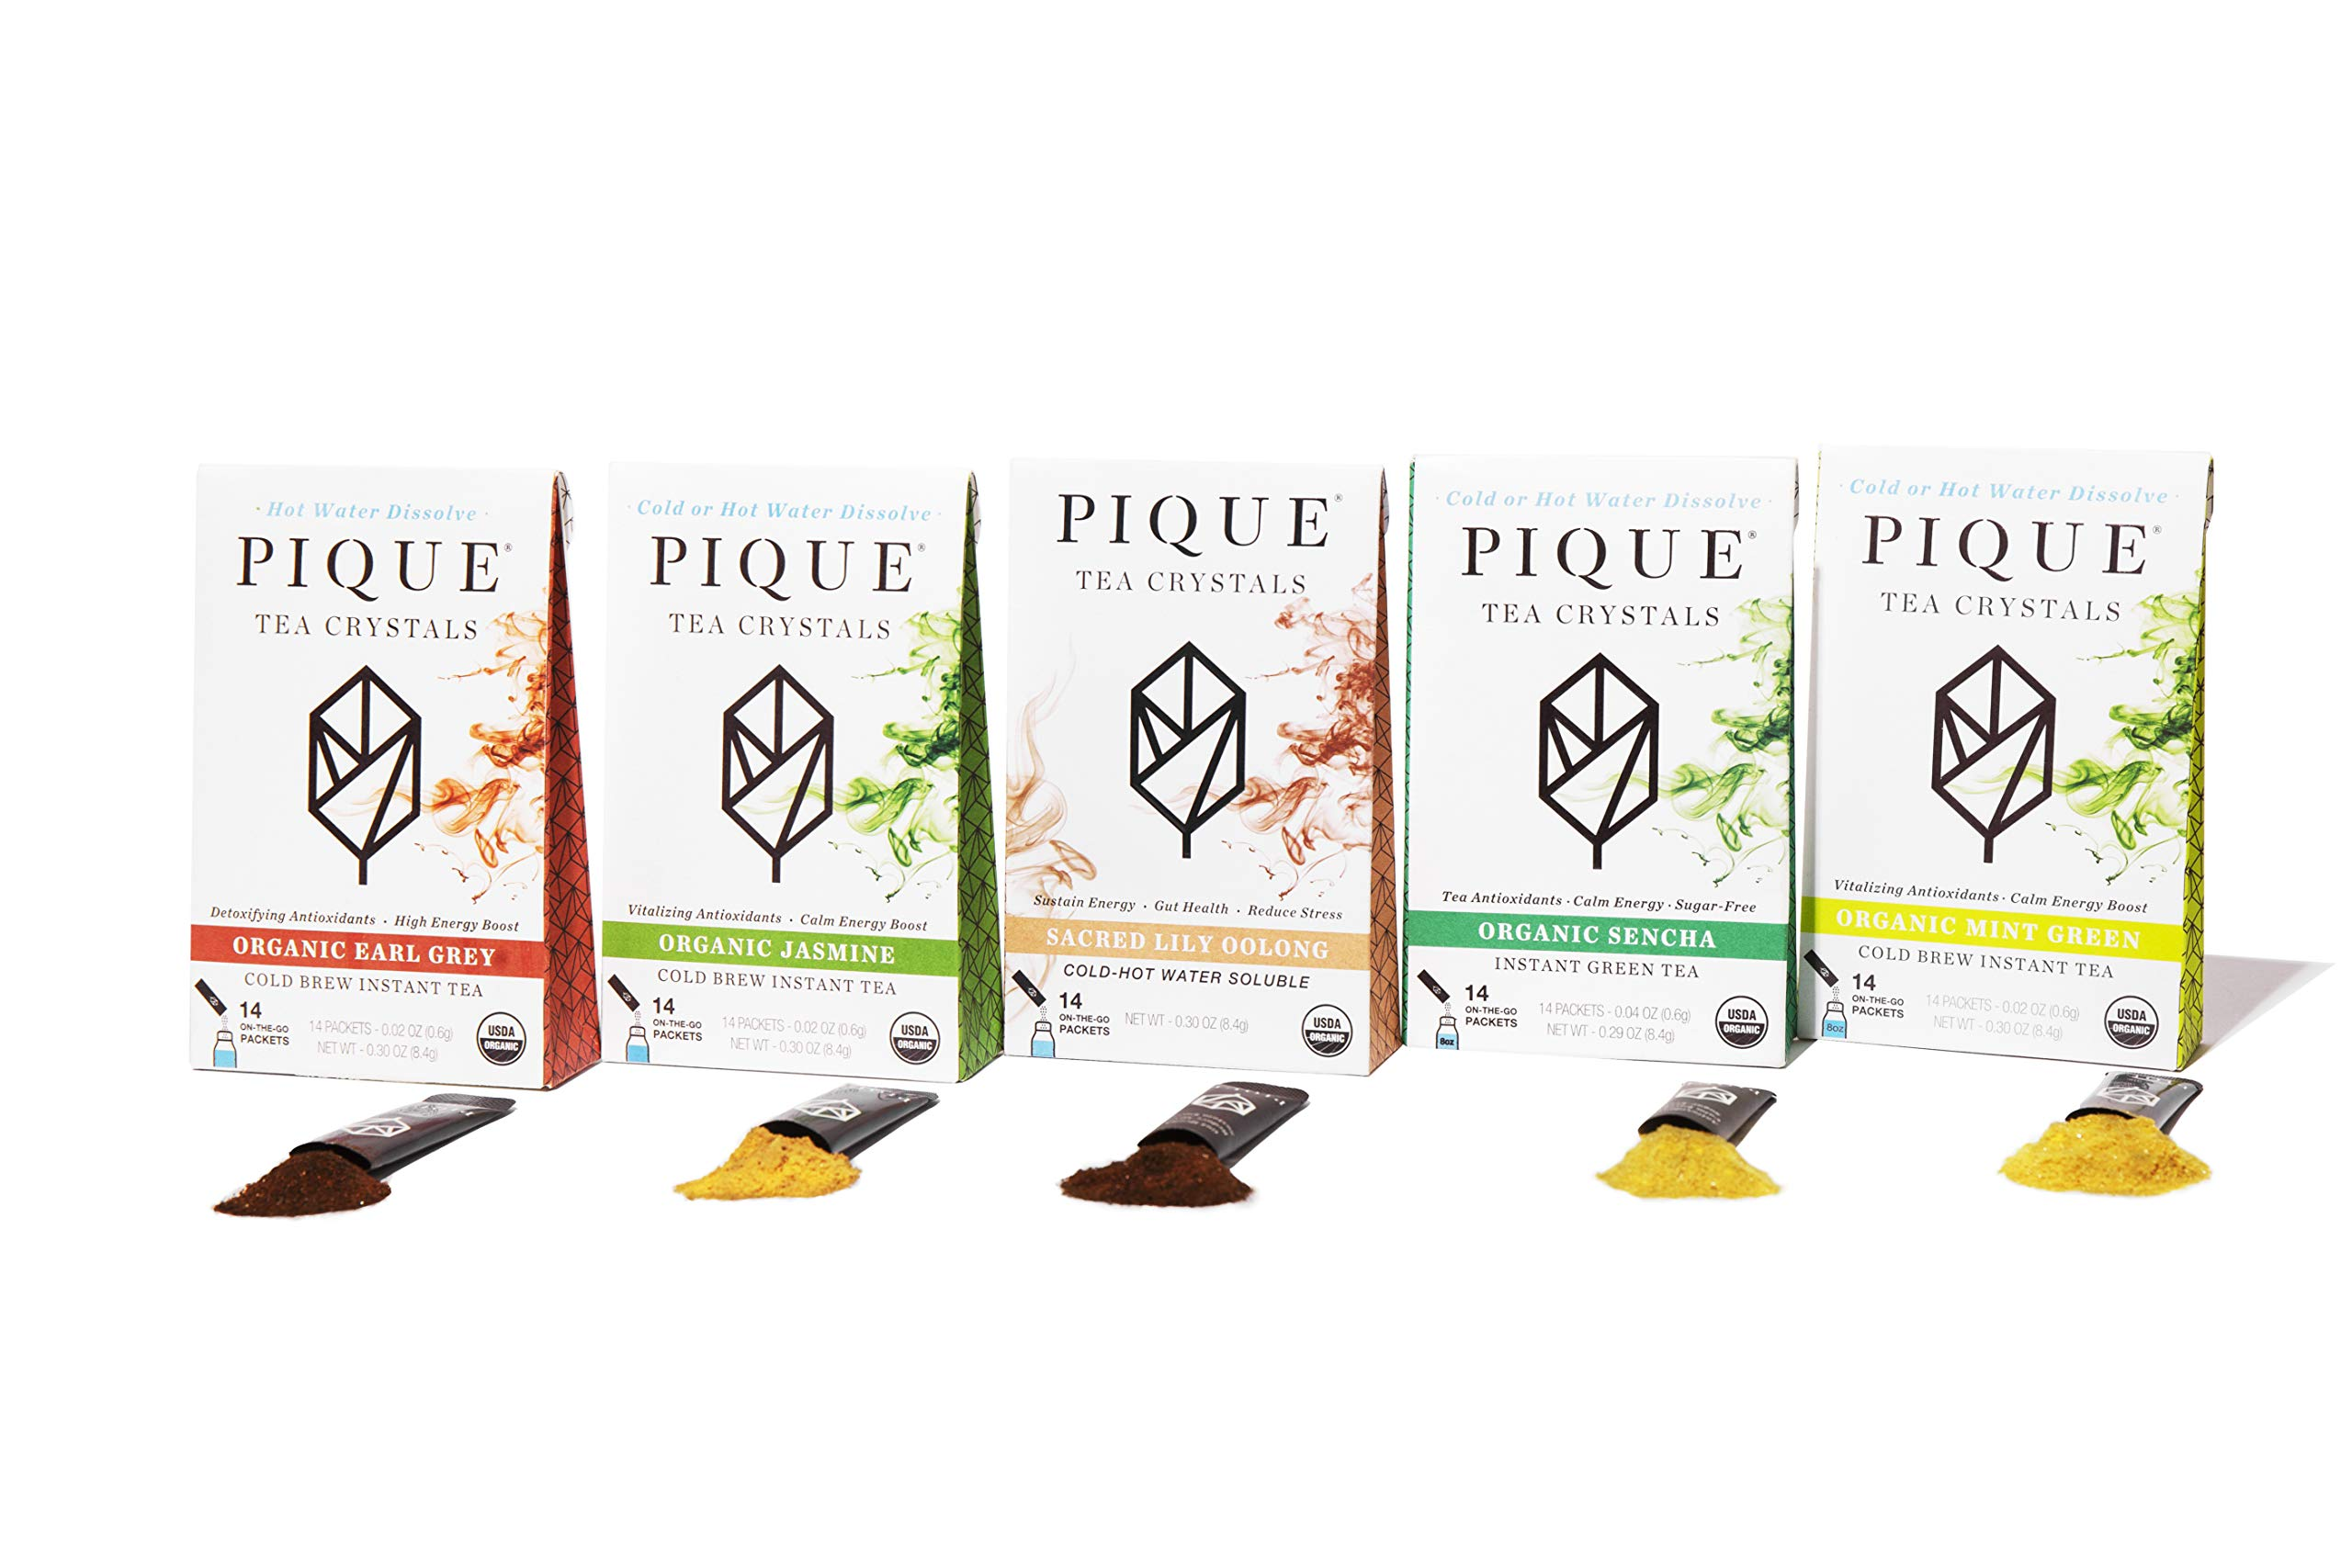 Pique Organic Variety Tea Crystals Sampler, Antioxidants, Energy, Gut Health, 70 Single Serve Sticks (Pack of 5)